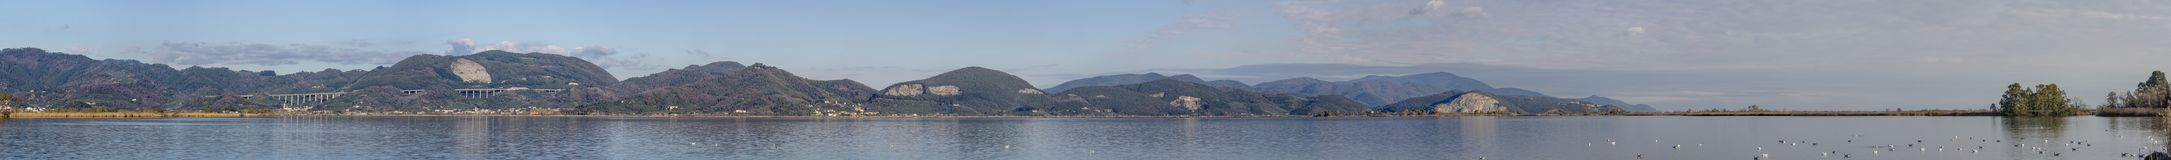 Panoramic view of Massaciuccoli Lake from Torre del Lago Puccini, Lucca, Tuscany, Italy. Europe stock images